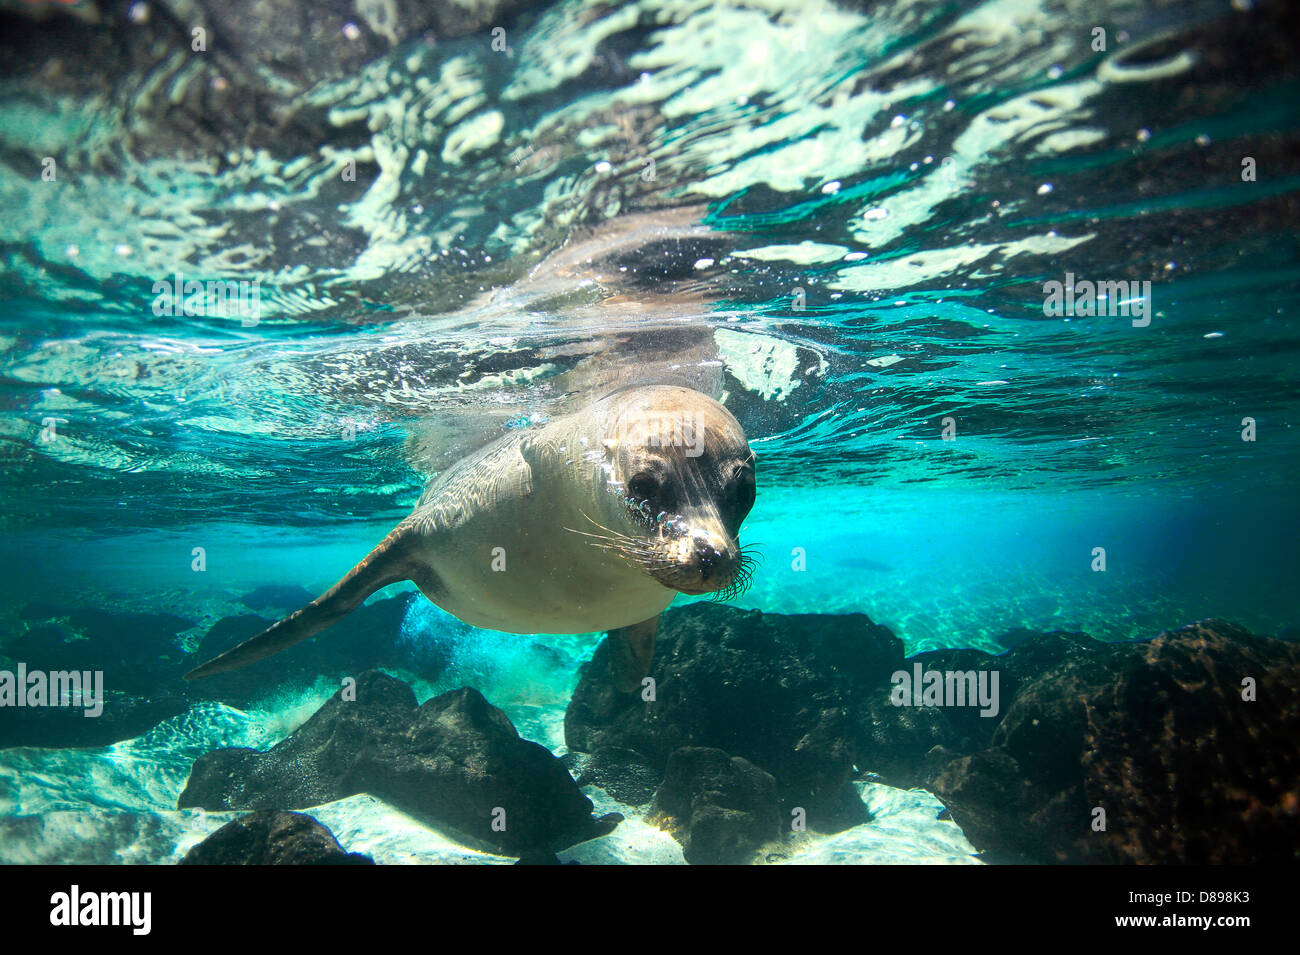 Curious sea lion underwater Galapagos Islands - Stock Image